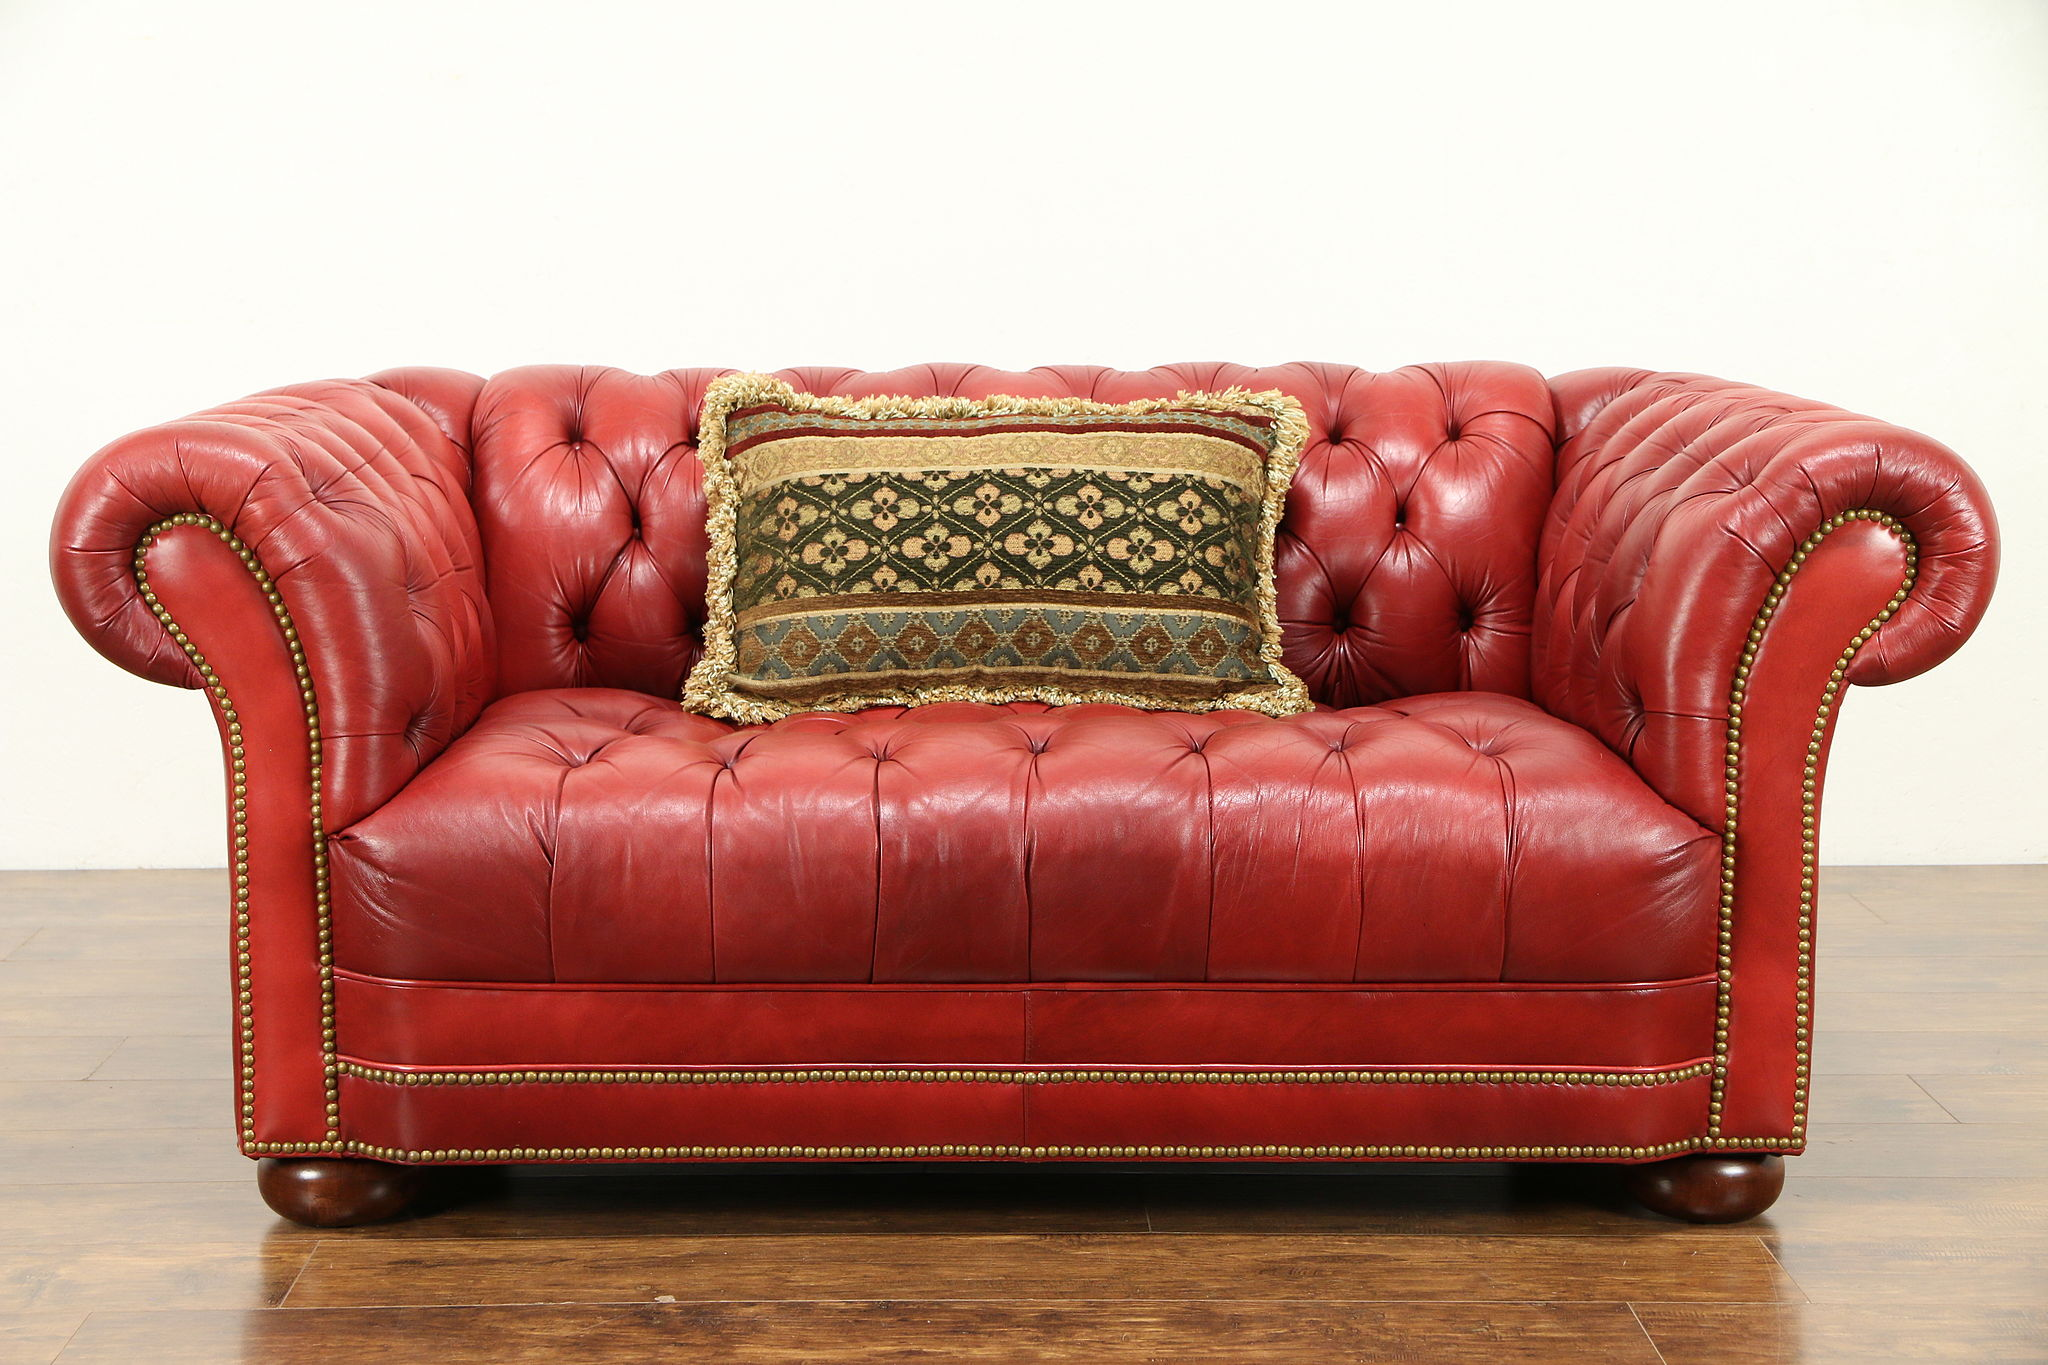 Super Leather Tufted Vintage Chesterfield Sofa Brass Nailhead Trim 31007 Bralicious Painted Fabric Chair Ideas Braliciousco